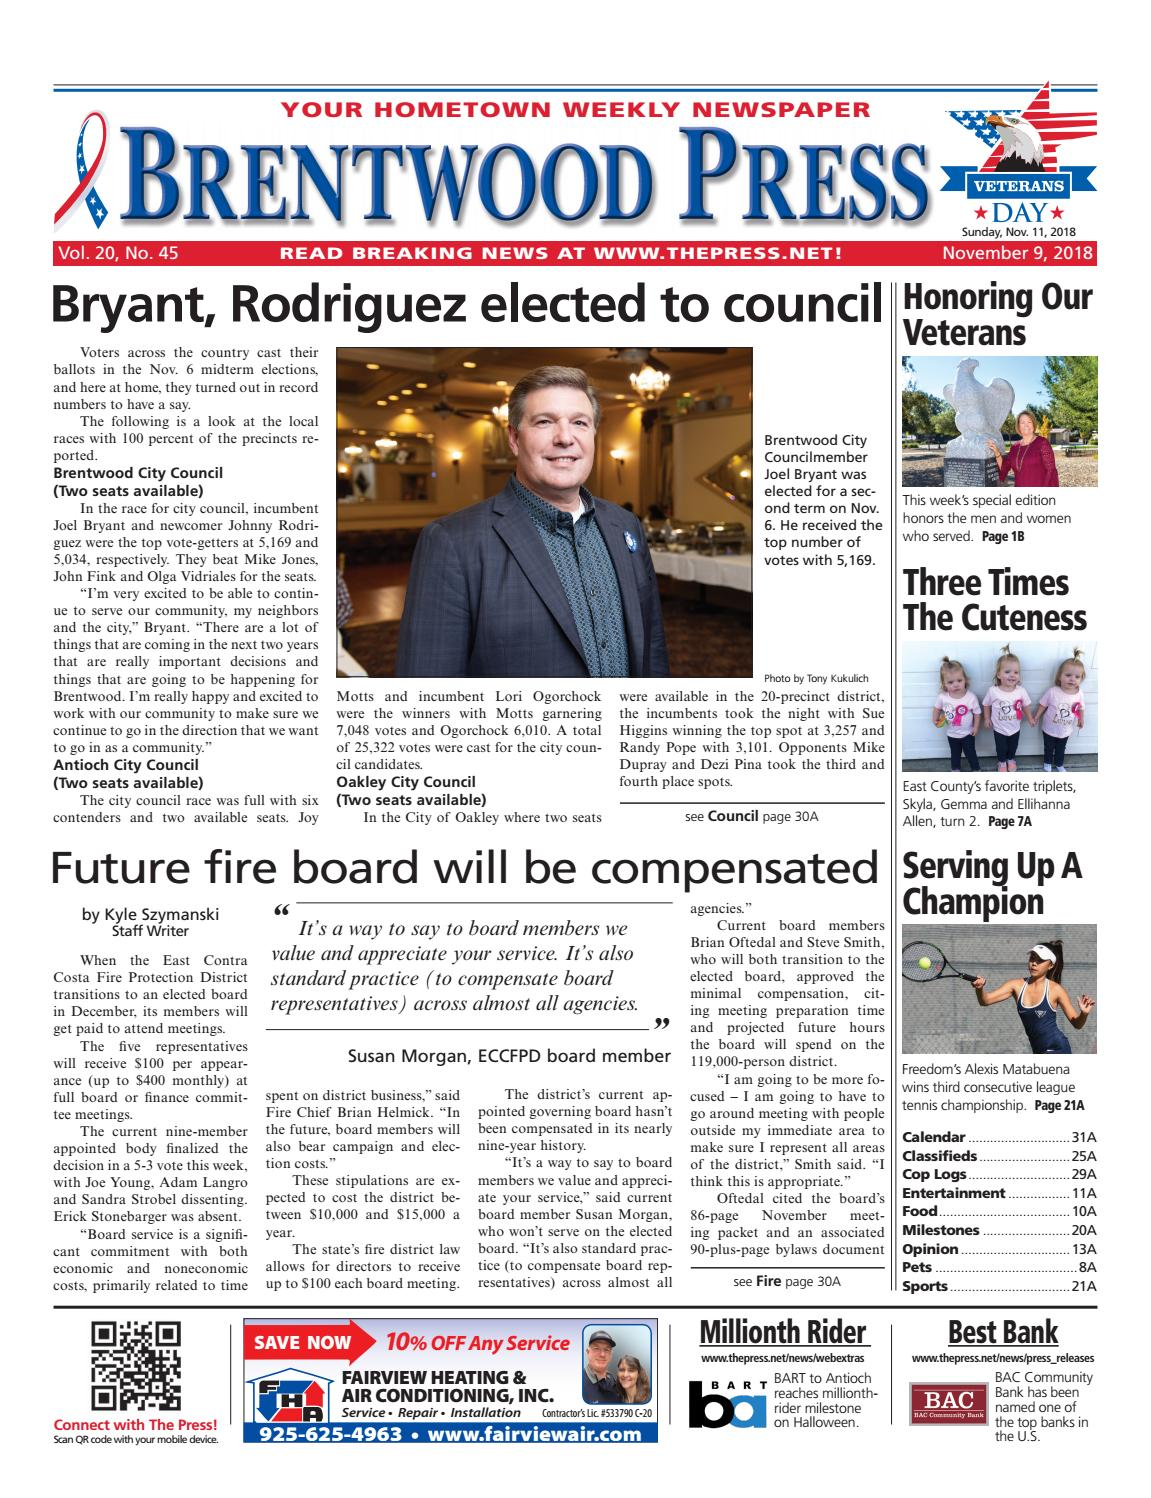 Brentwood Press 11.09.18 by Brentwood Press   Publishing - issuu 7c6bcd9c5